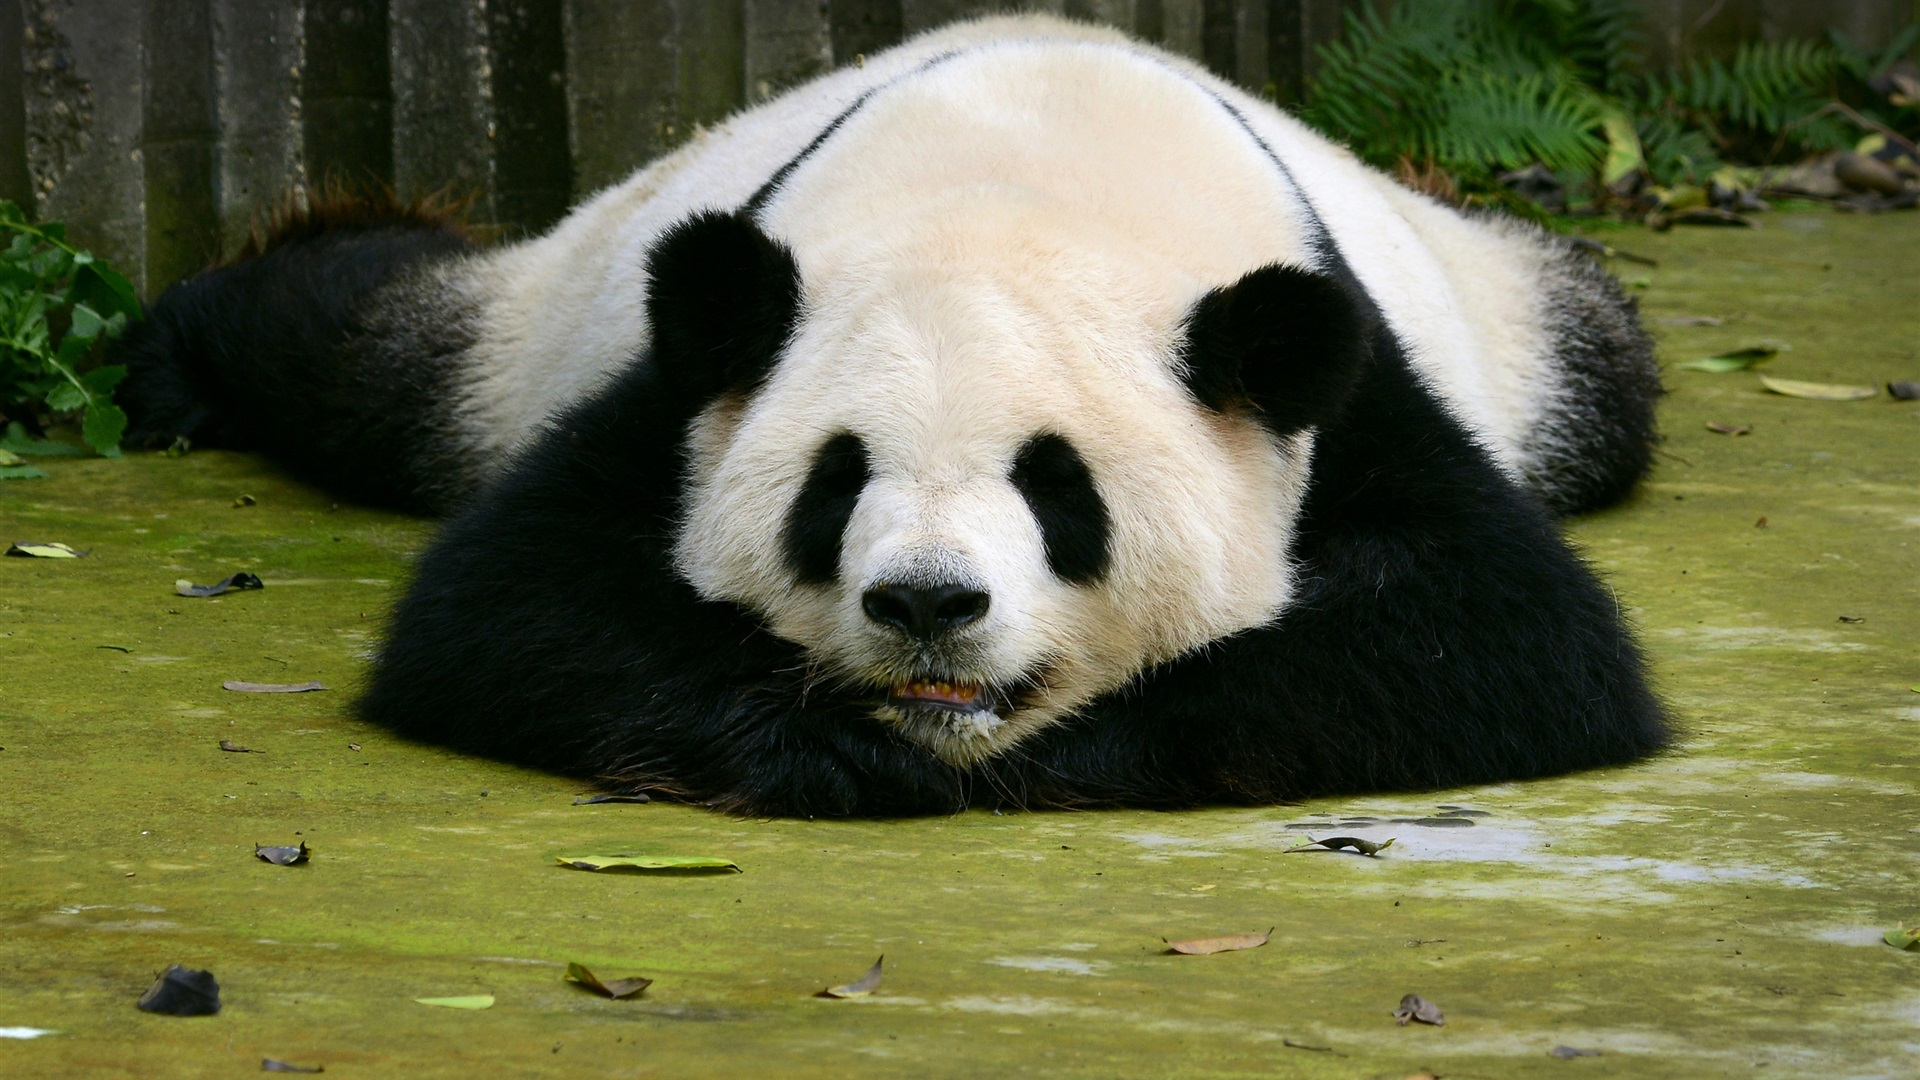 Panda-sleep-on-ground_1920x1080.jpg